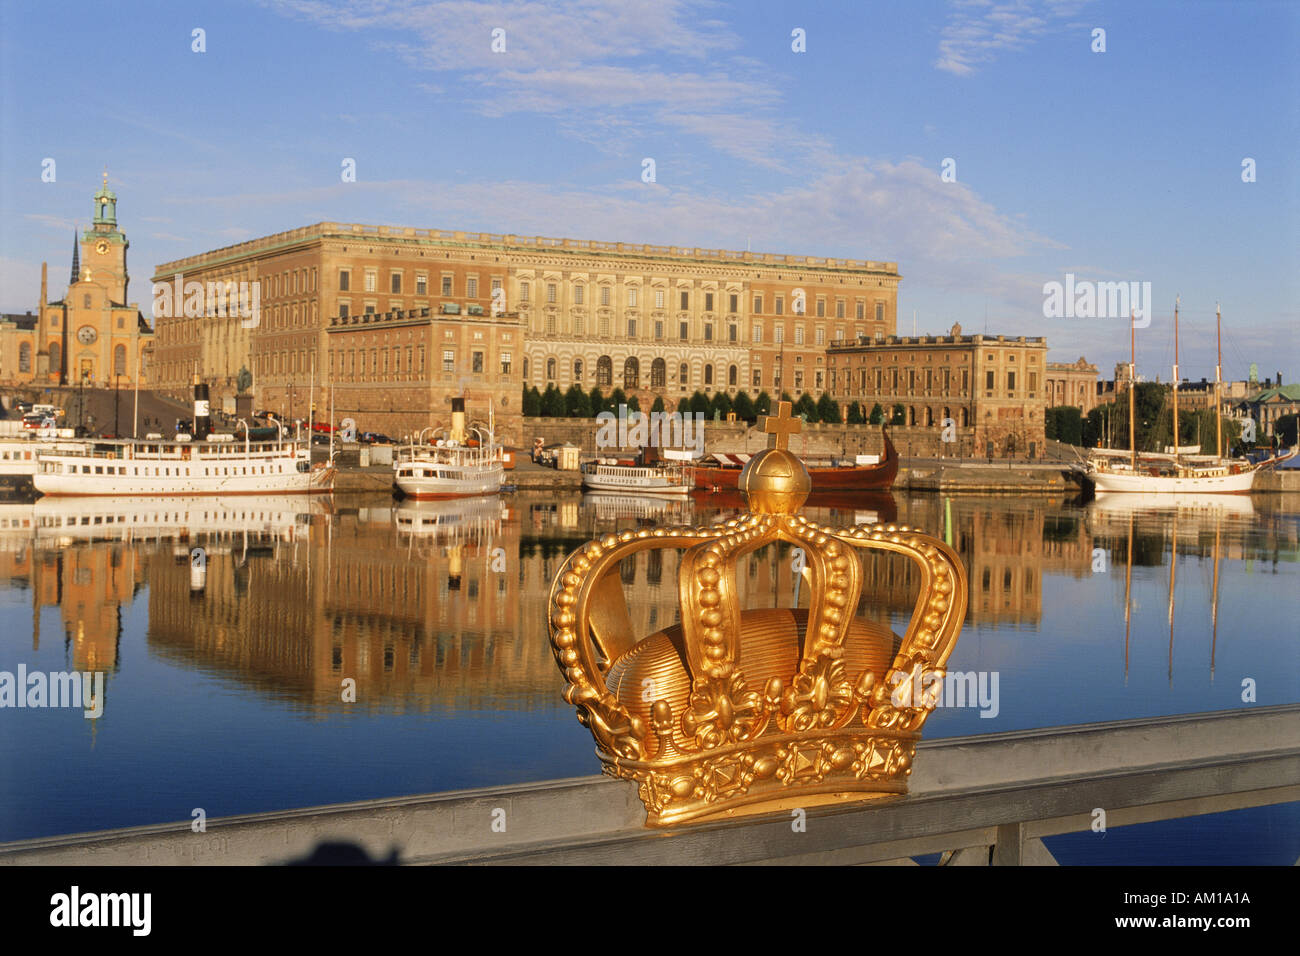 Golden crown on Skeppsholmen Bridge with Royal Palace in Stockholm - Stock Image